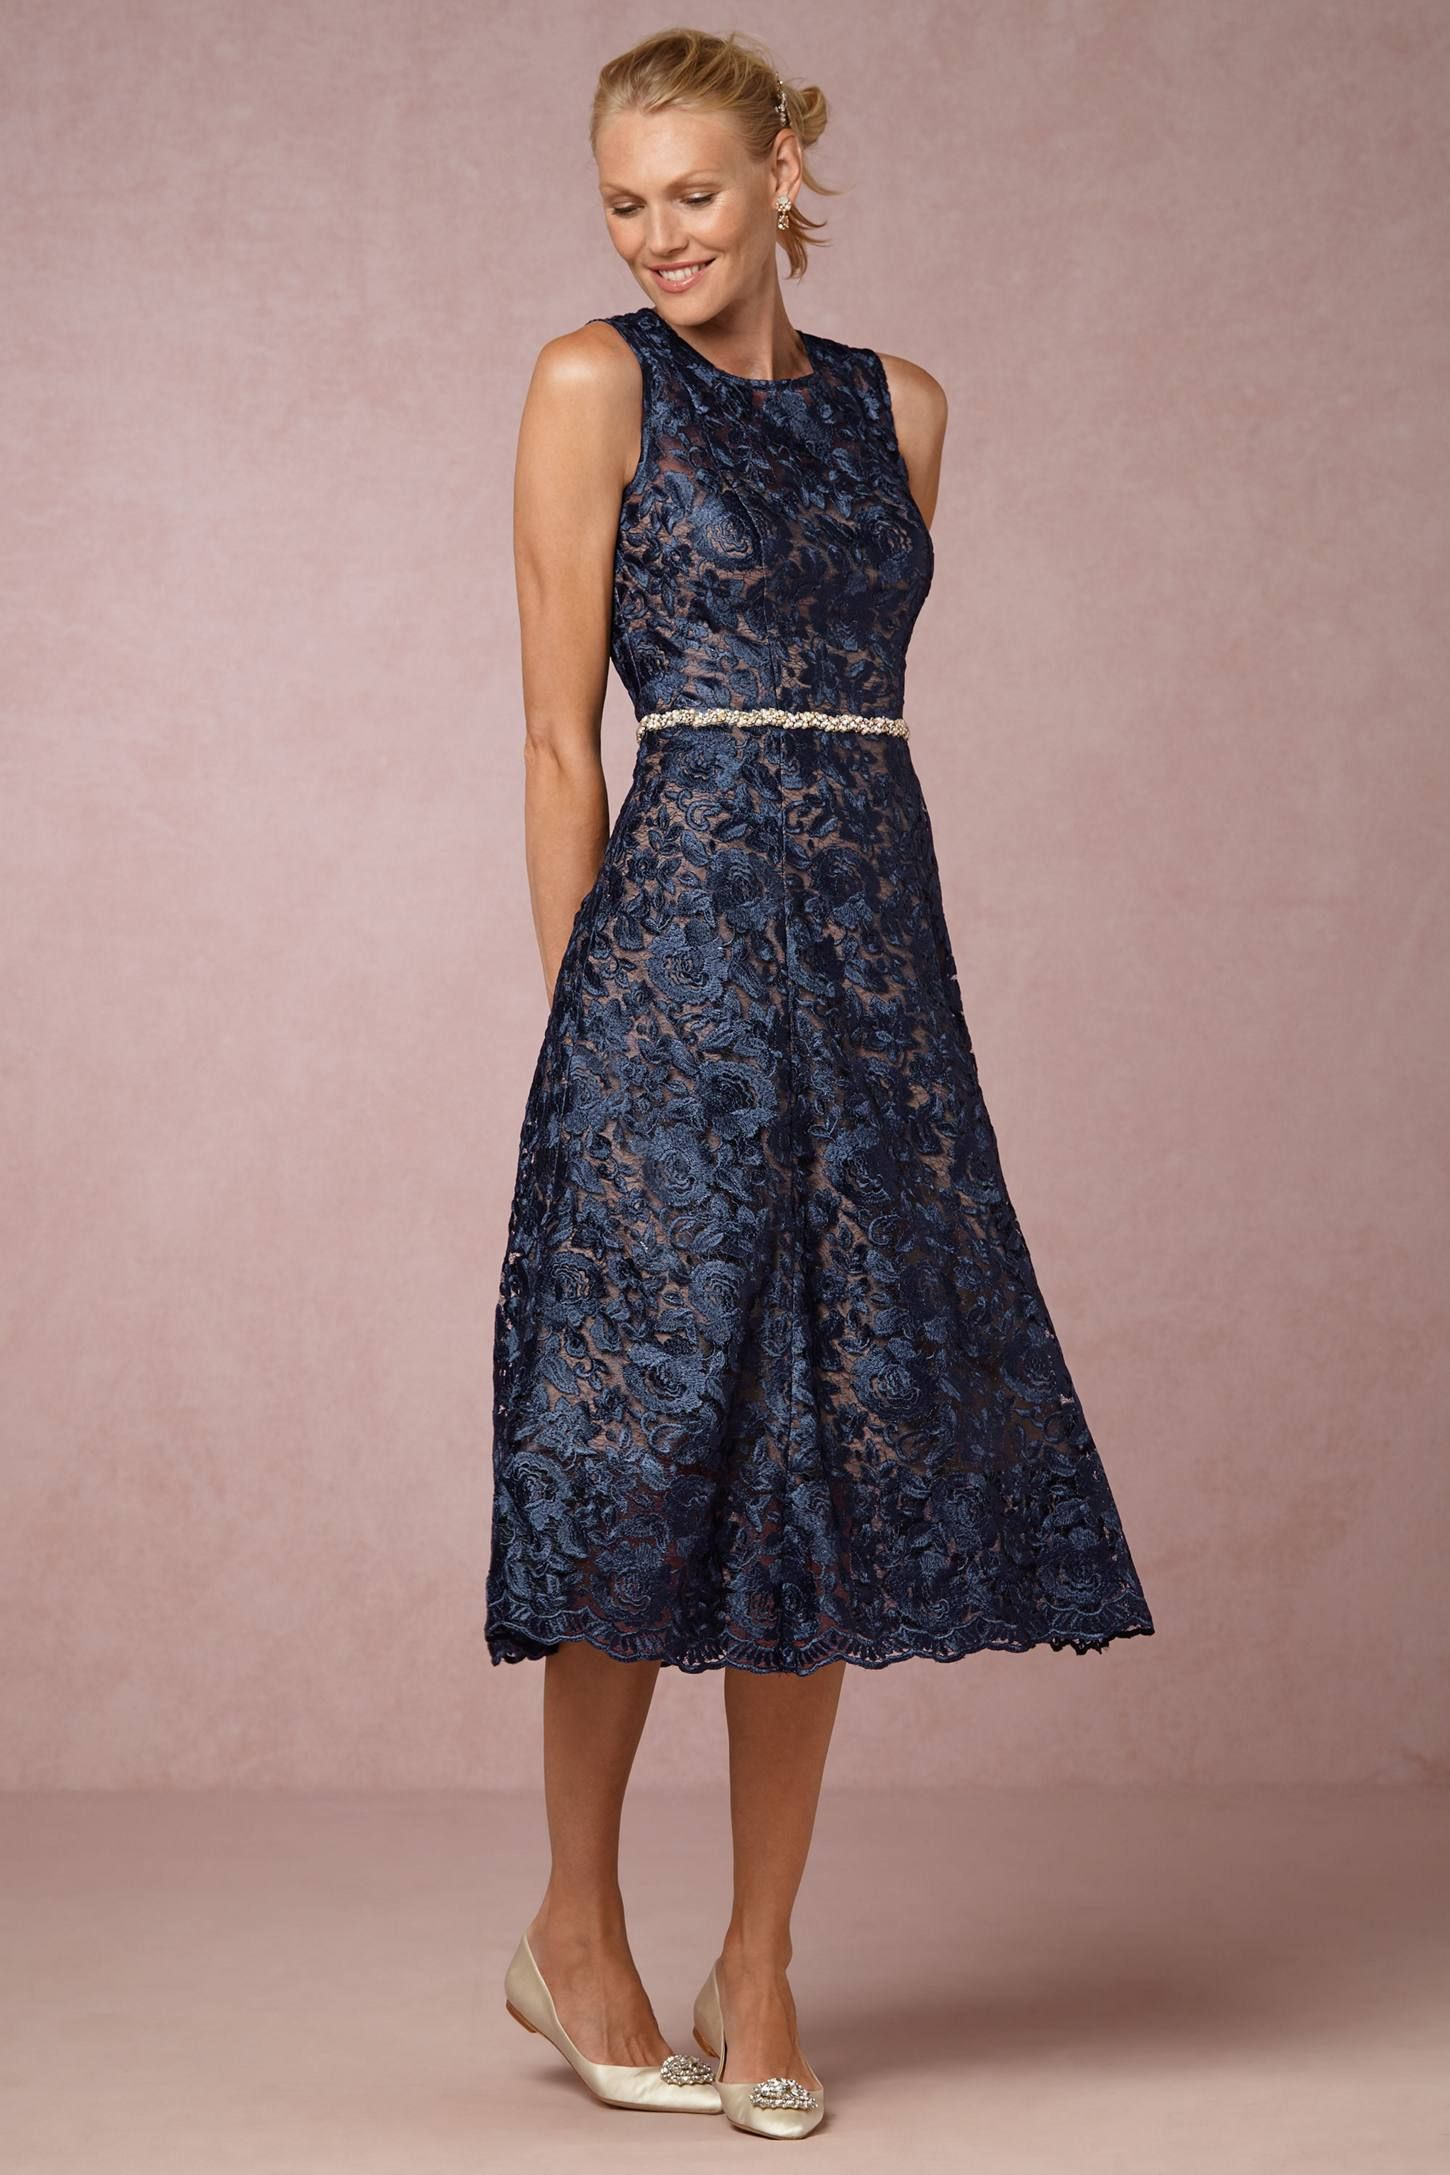 Shop the adela dress and more anthropologie at anthropologie today